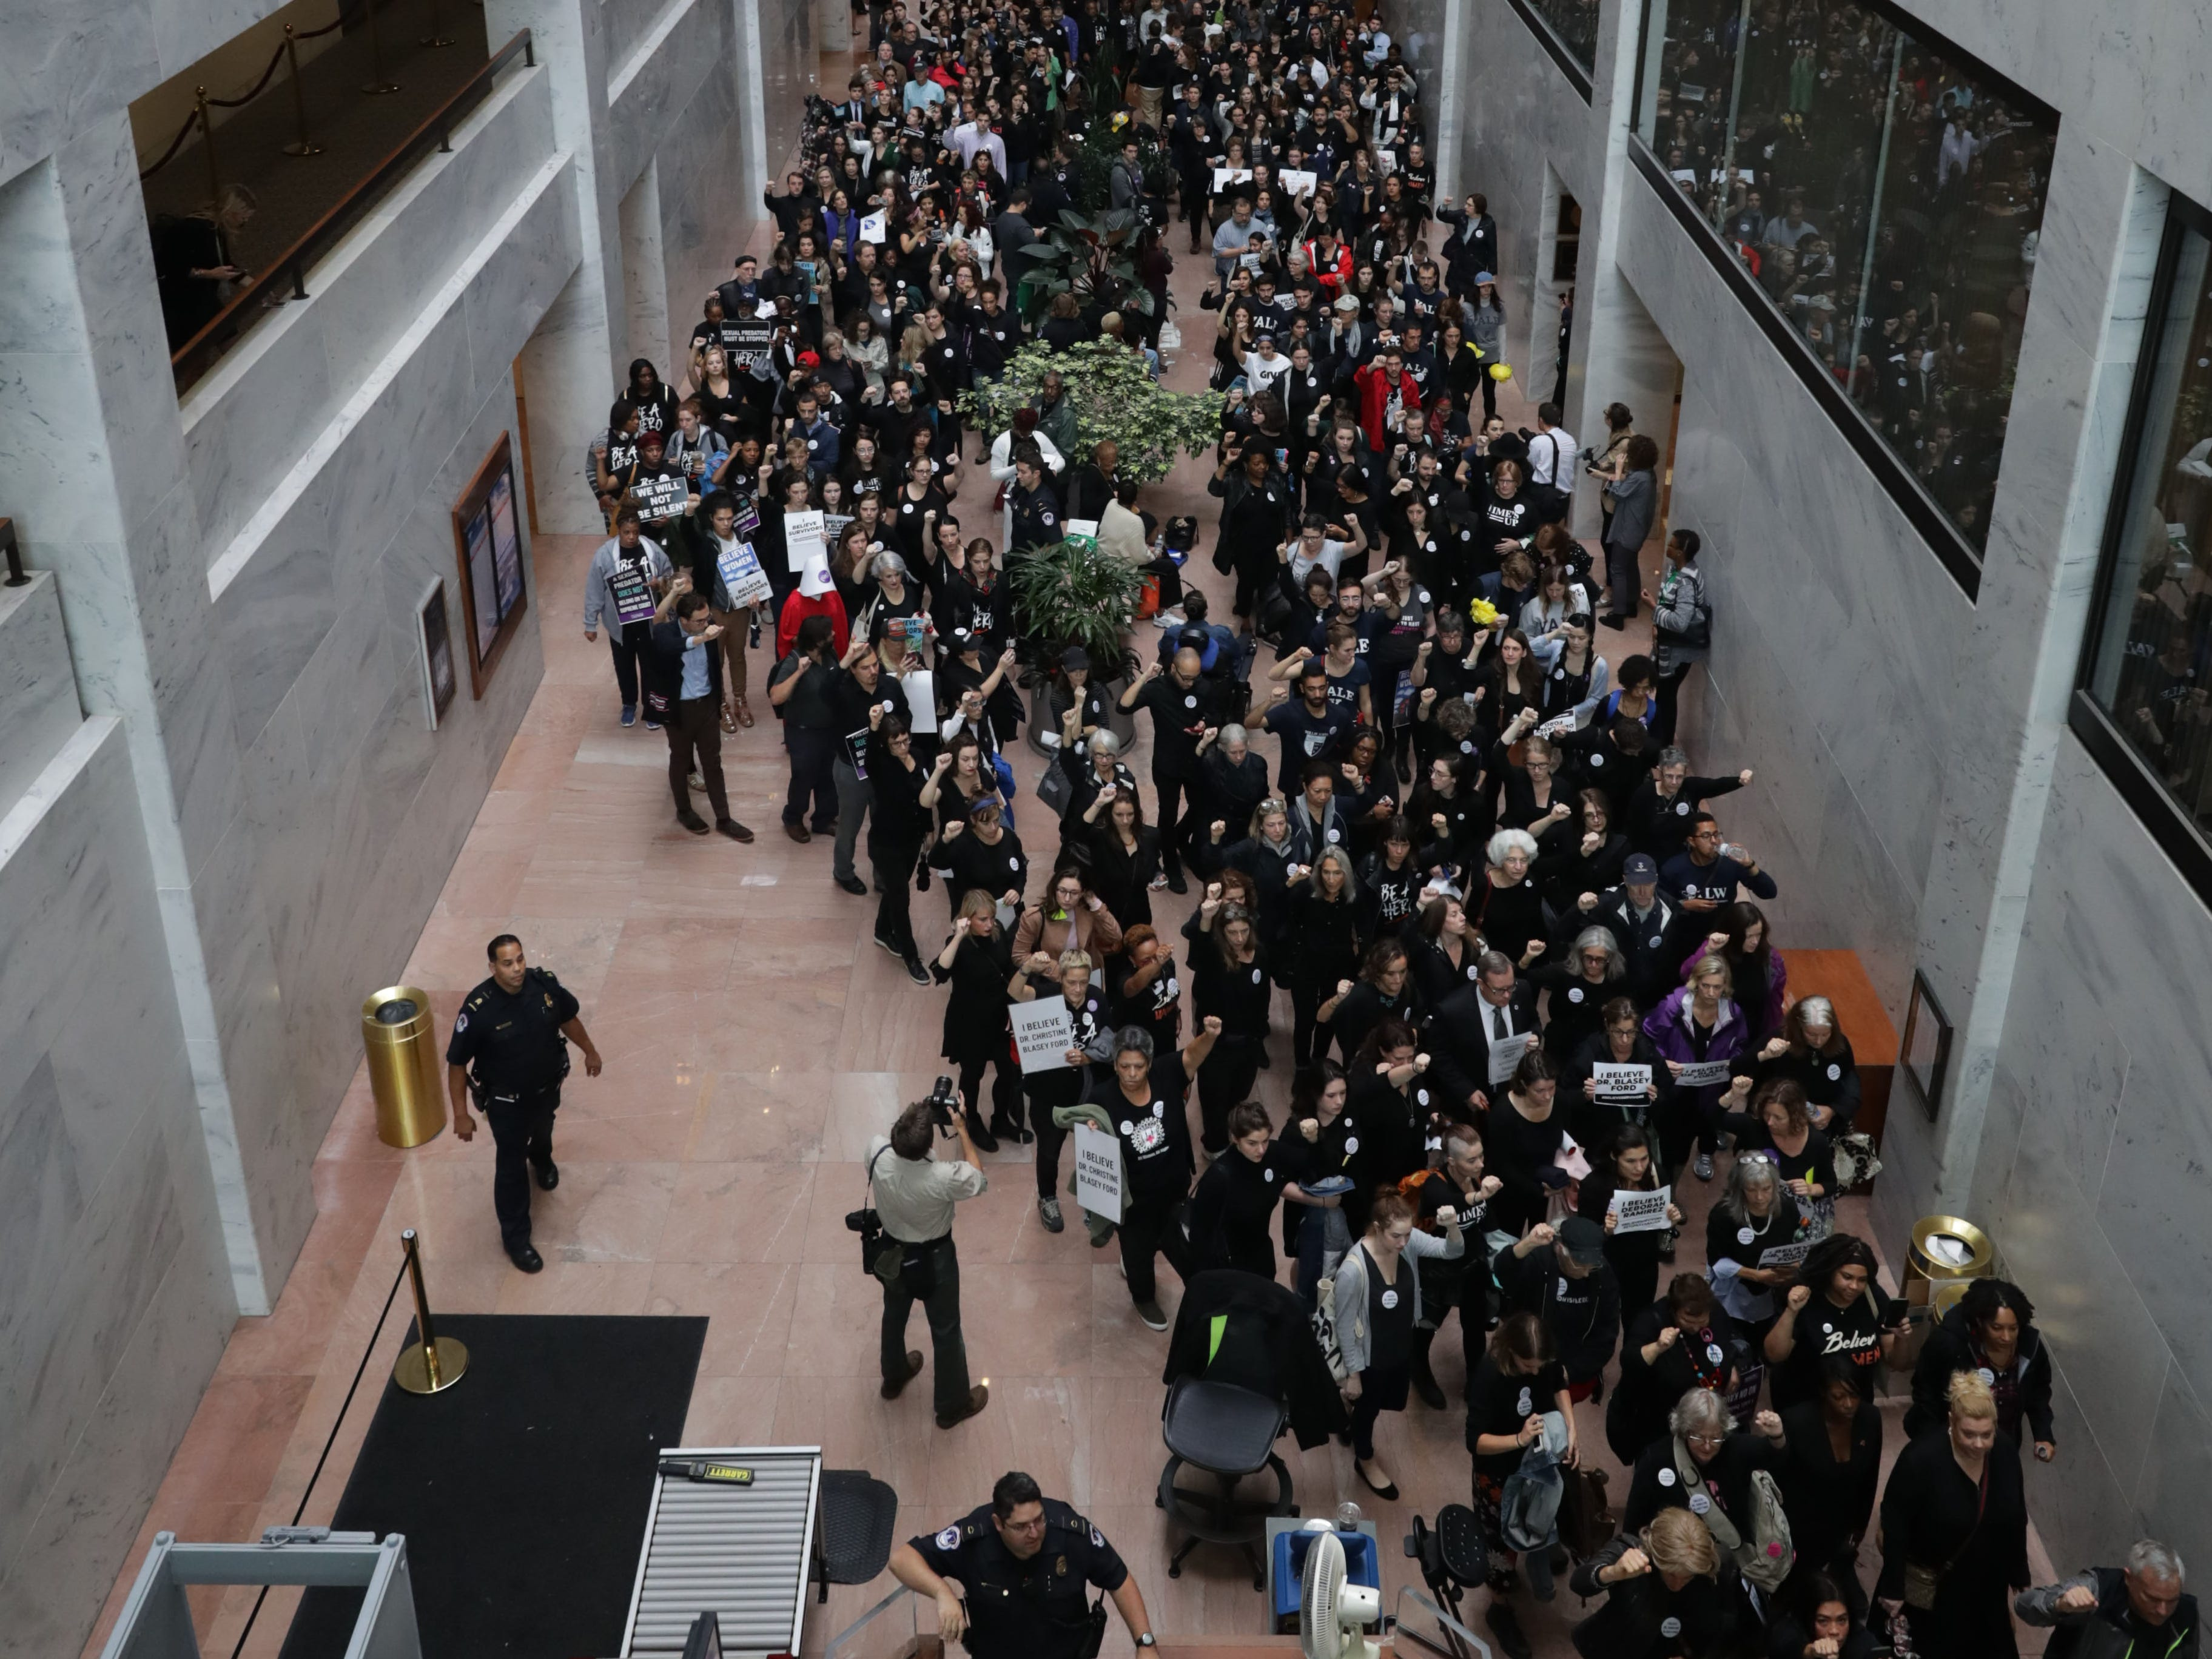 WASHINGTON, DC - SEPTEMBER 24: Hundreds of protesters rally in the Hart Senate Office Building while demonstrating against the confirmation of Supreme Court nominee Judge Brett Kavanaugh on Capitol Hill September 24, 2018 in Washington, DC. Hundreds of people from half a dozen progressive organizations, including students from Yale University Law School, protested on Capitol Hill for a #BelieveSurvivors Walkout against Judge Kavanaugh, who has been accused by at least two women of sexual assault. (Photo by Chip Somodevilla/Getty Images) ORG XMIT: 775232425 ORIG FILE ID: 1043782668